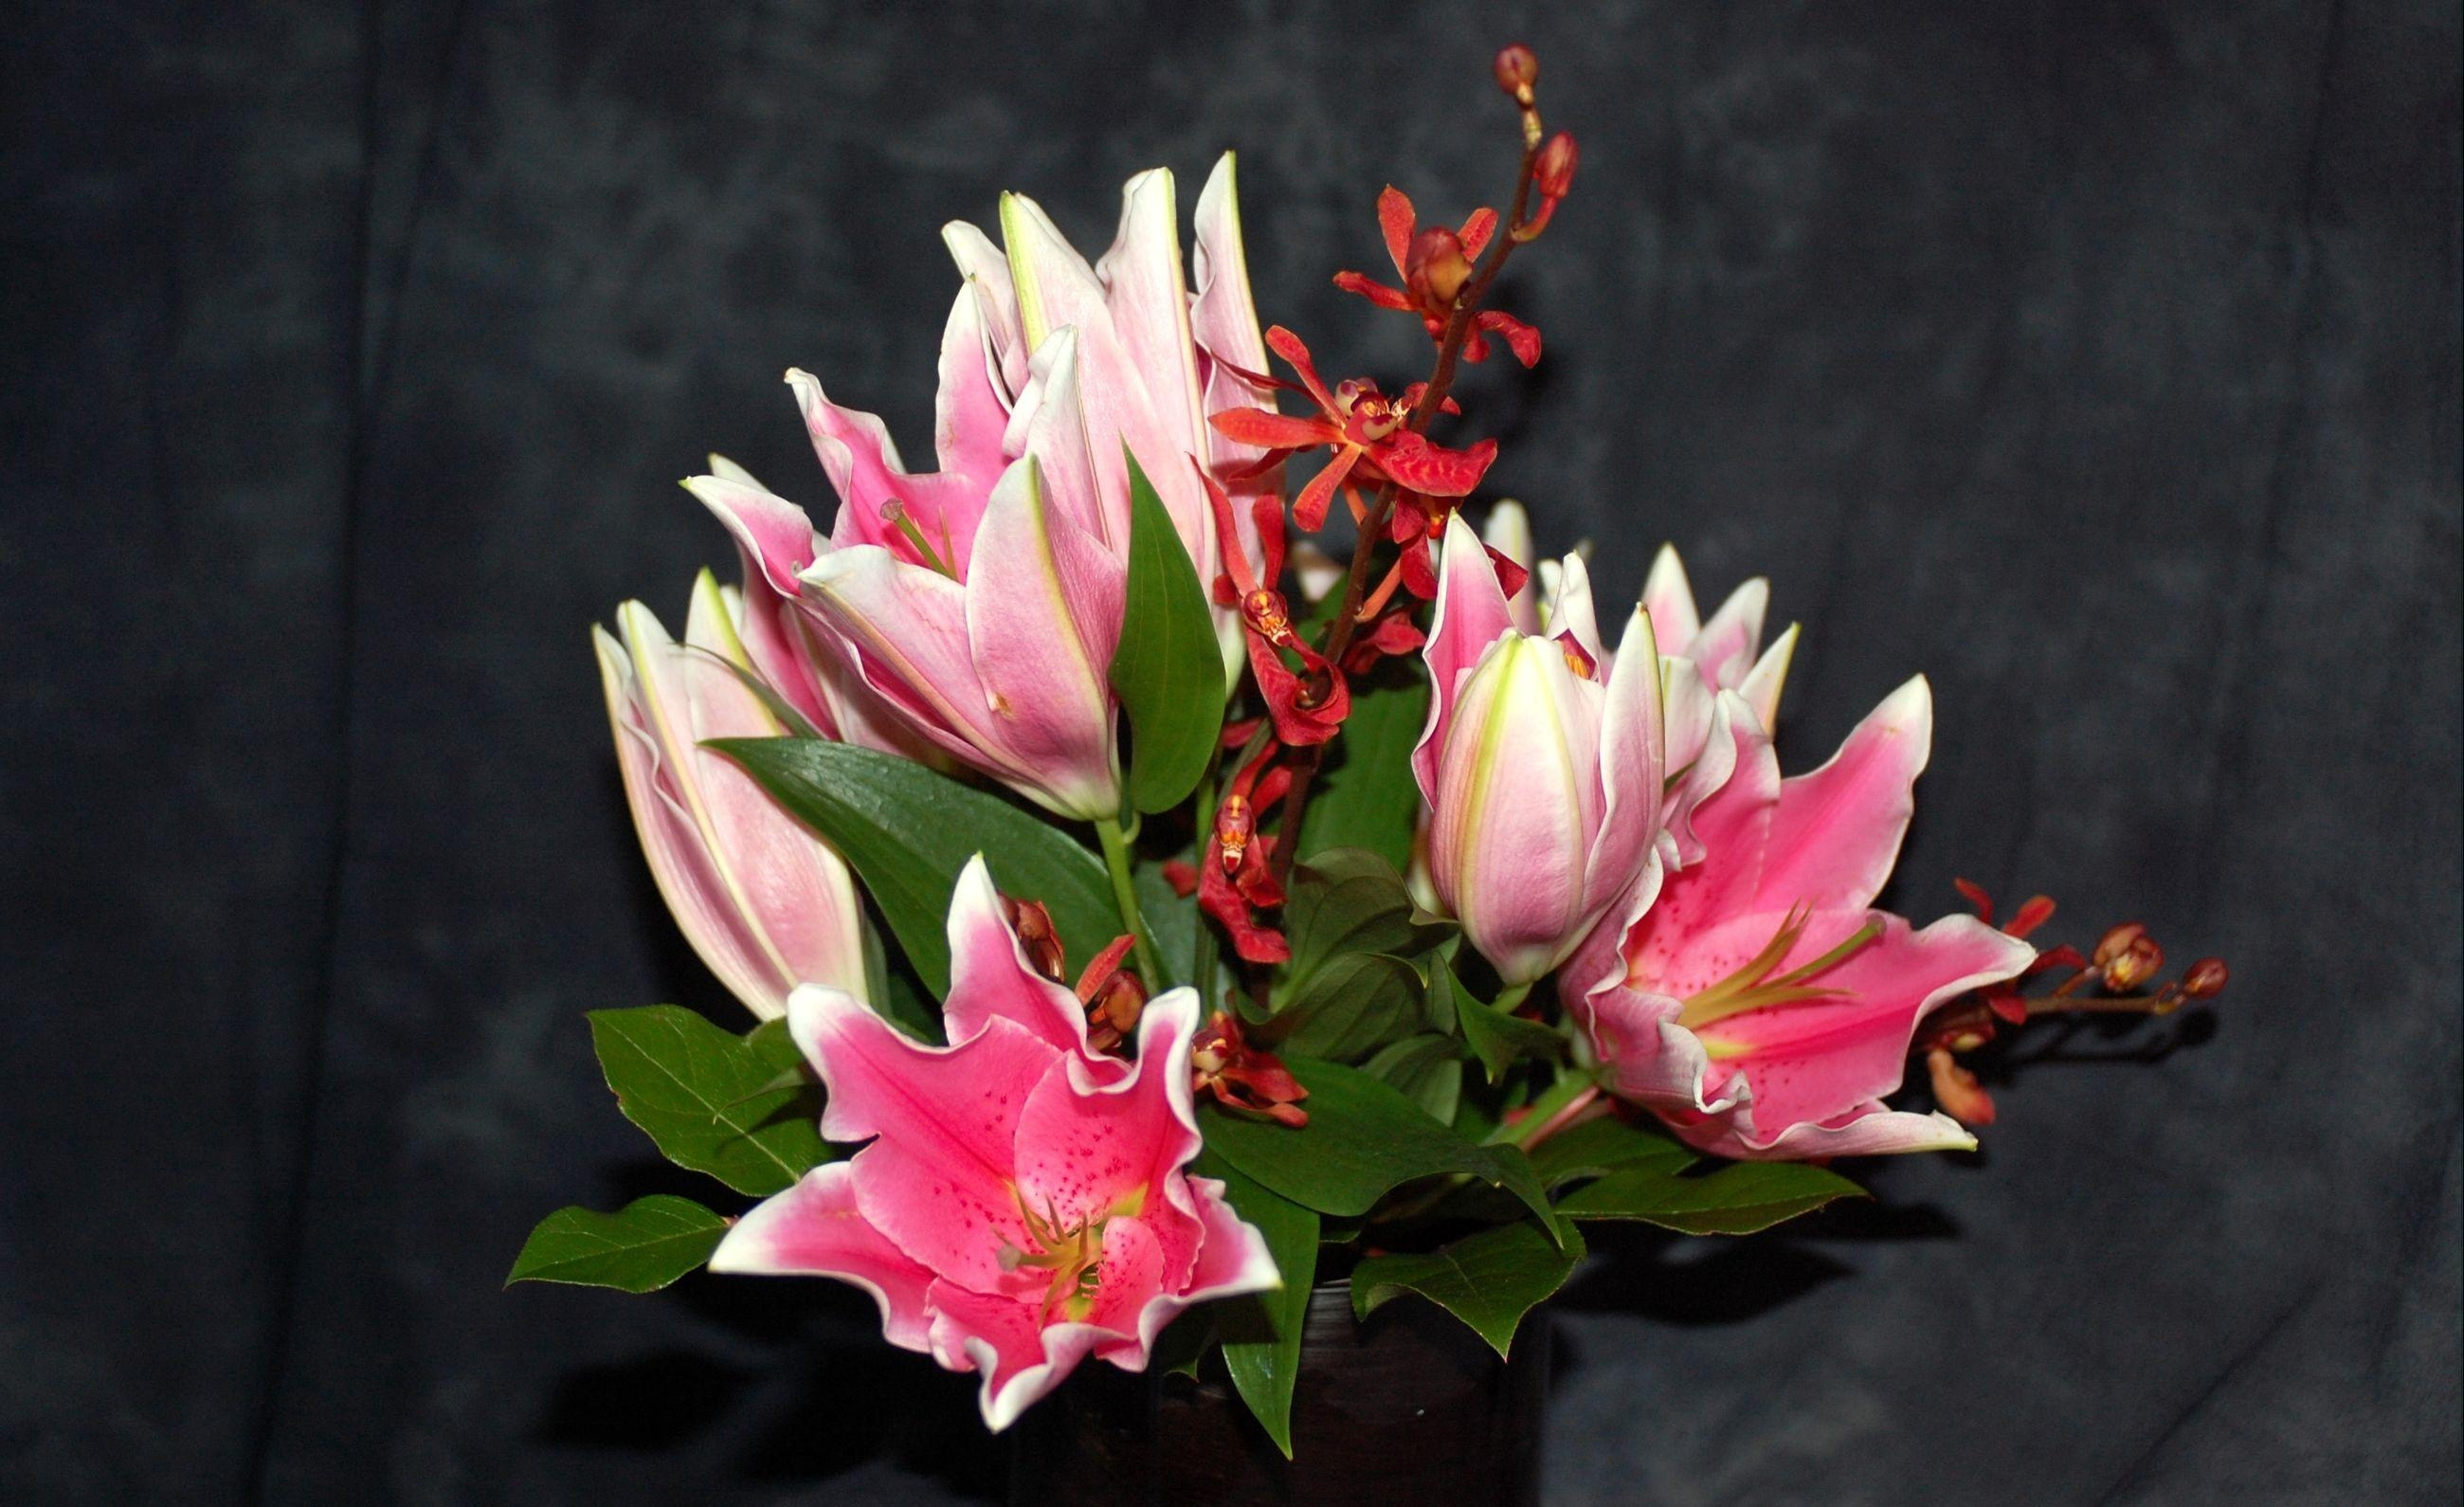 83982 download wallpaper Flowers, Alstroemeria, Orchids, Bouquet, Leaves, Background screensavers and pictures for free